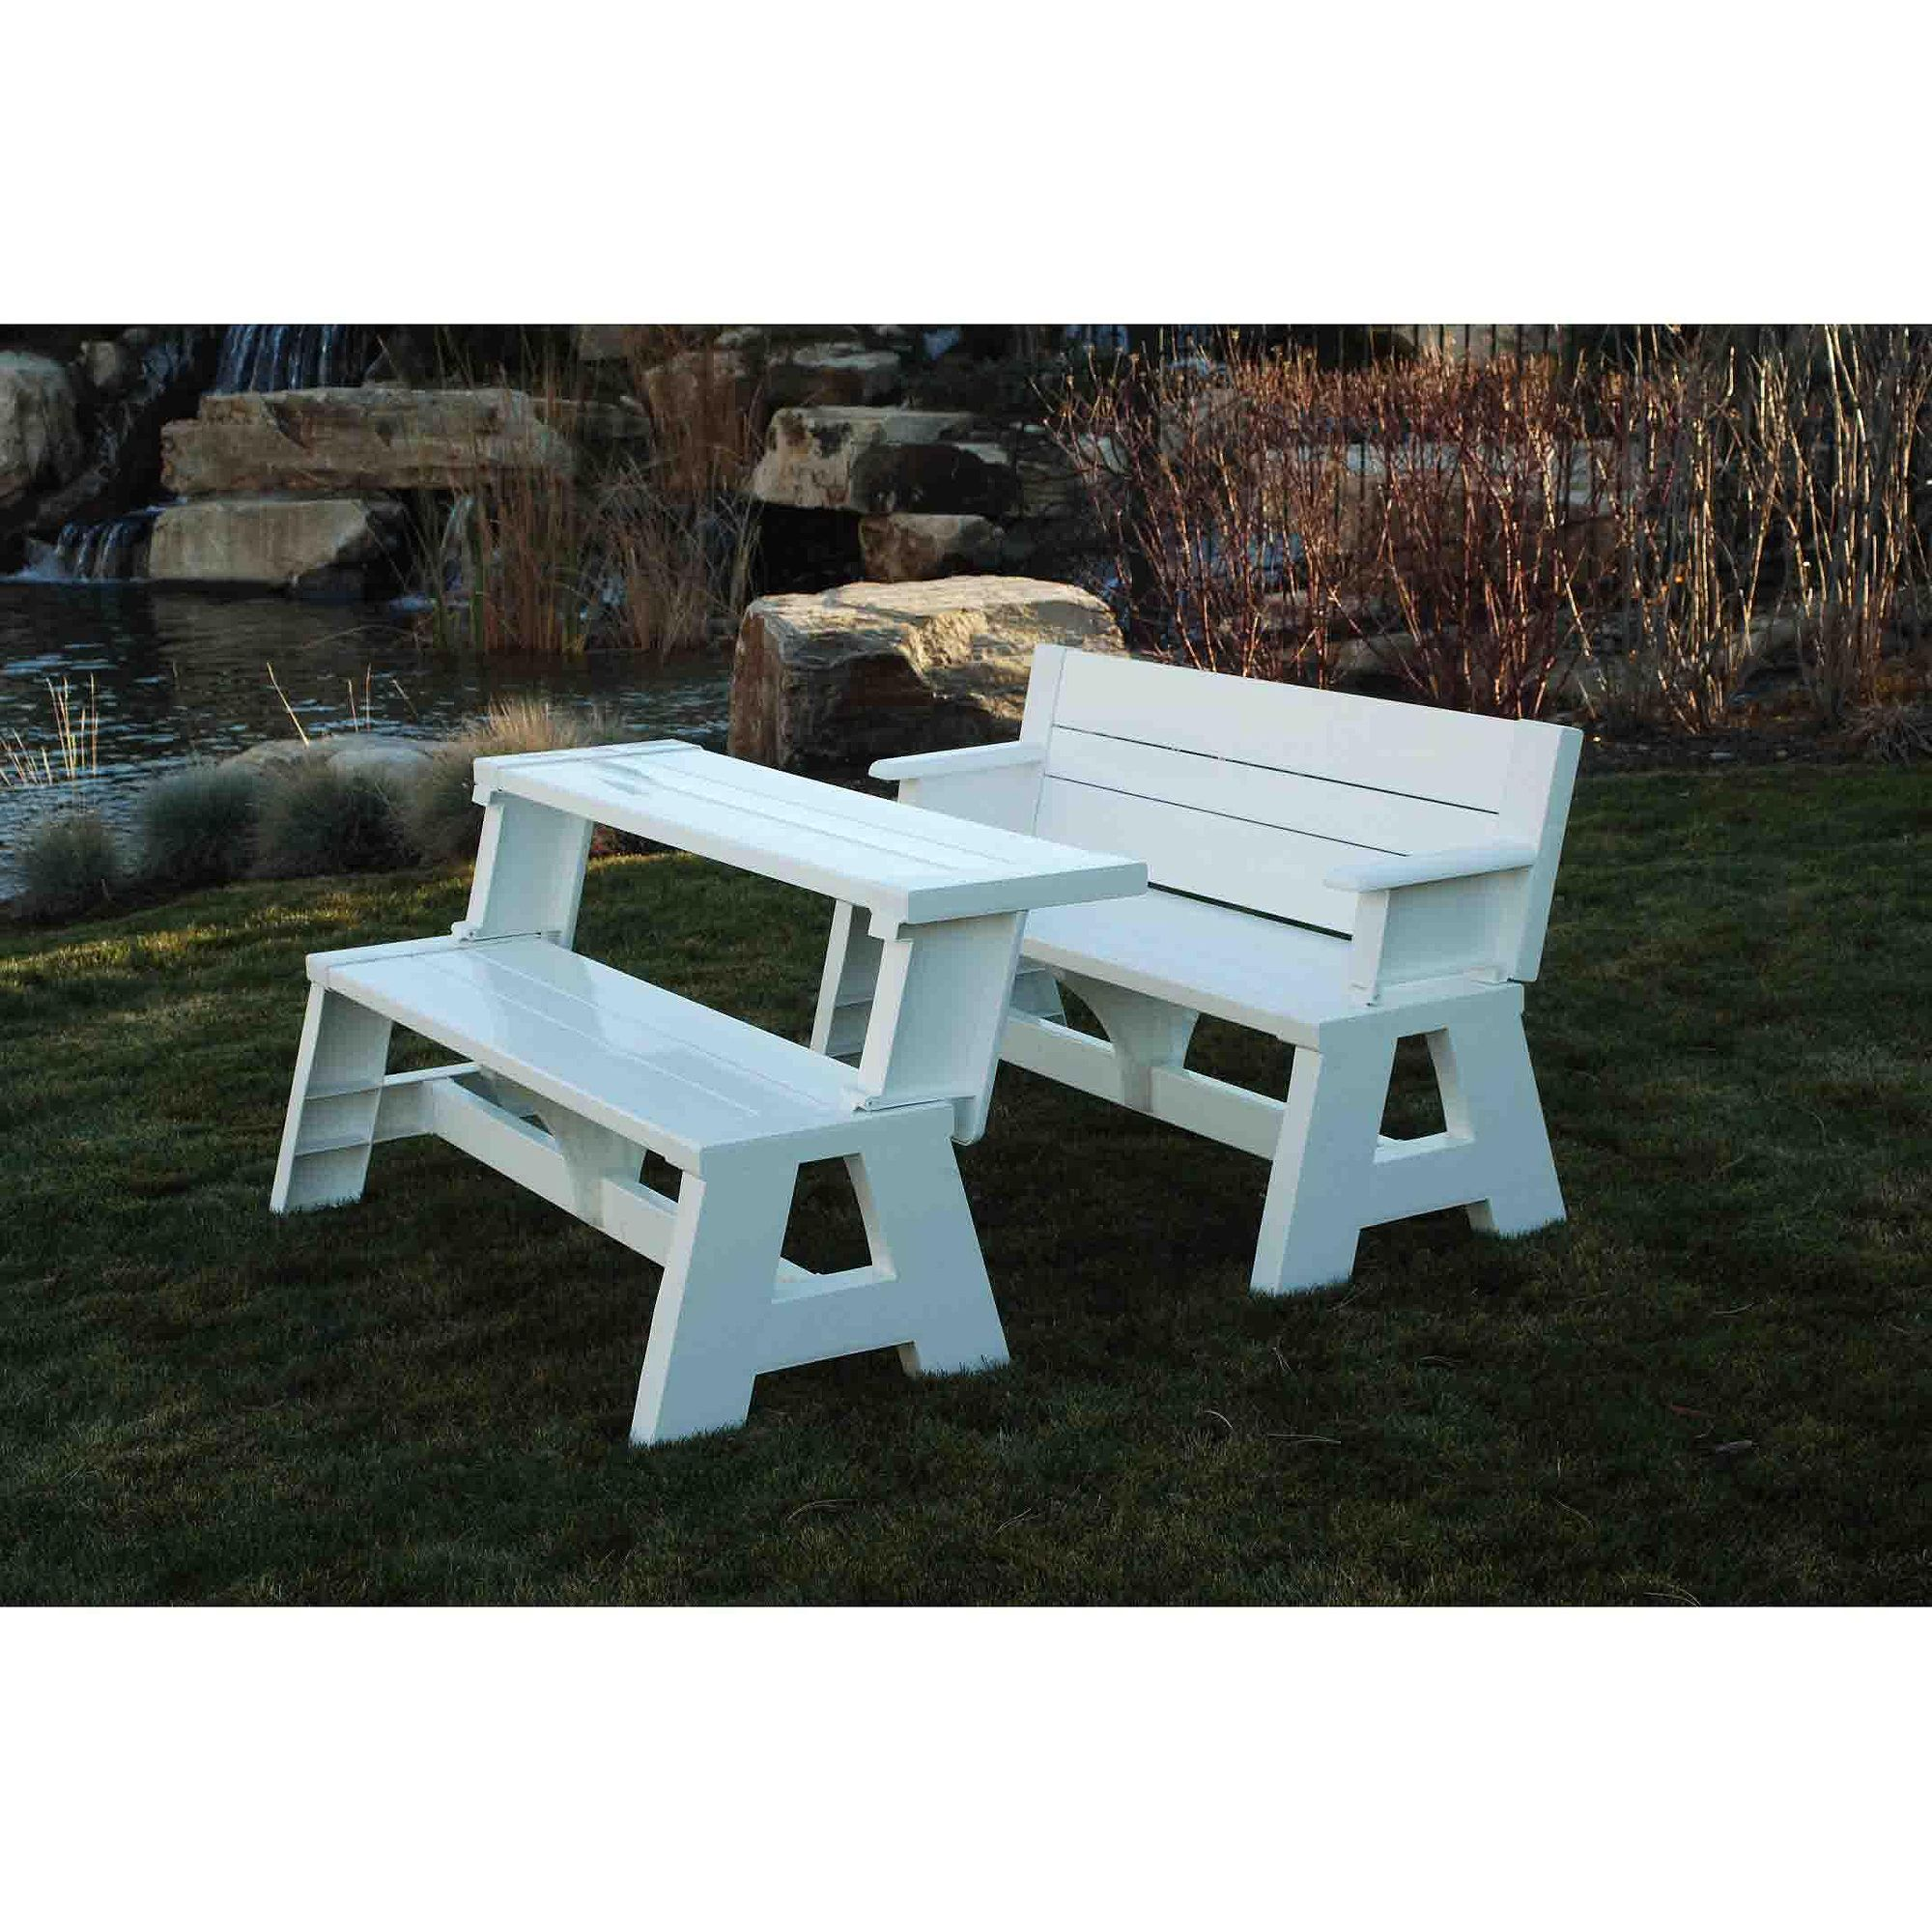 Convert A Bench Walmart Com Convert A Bench Picnic Table Bench Picnic Table